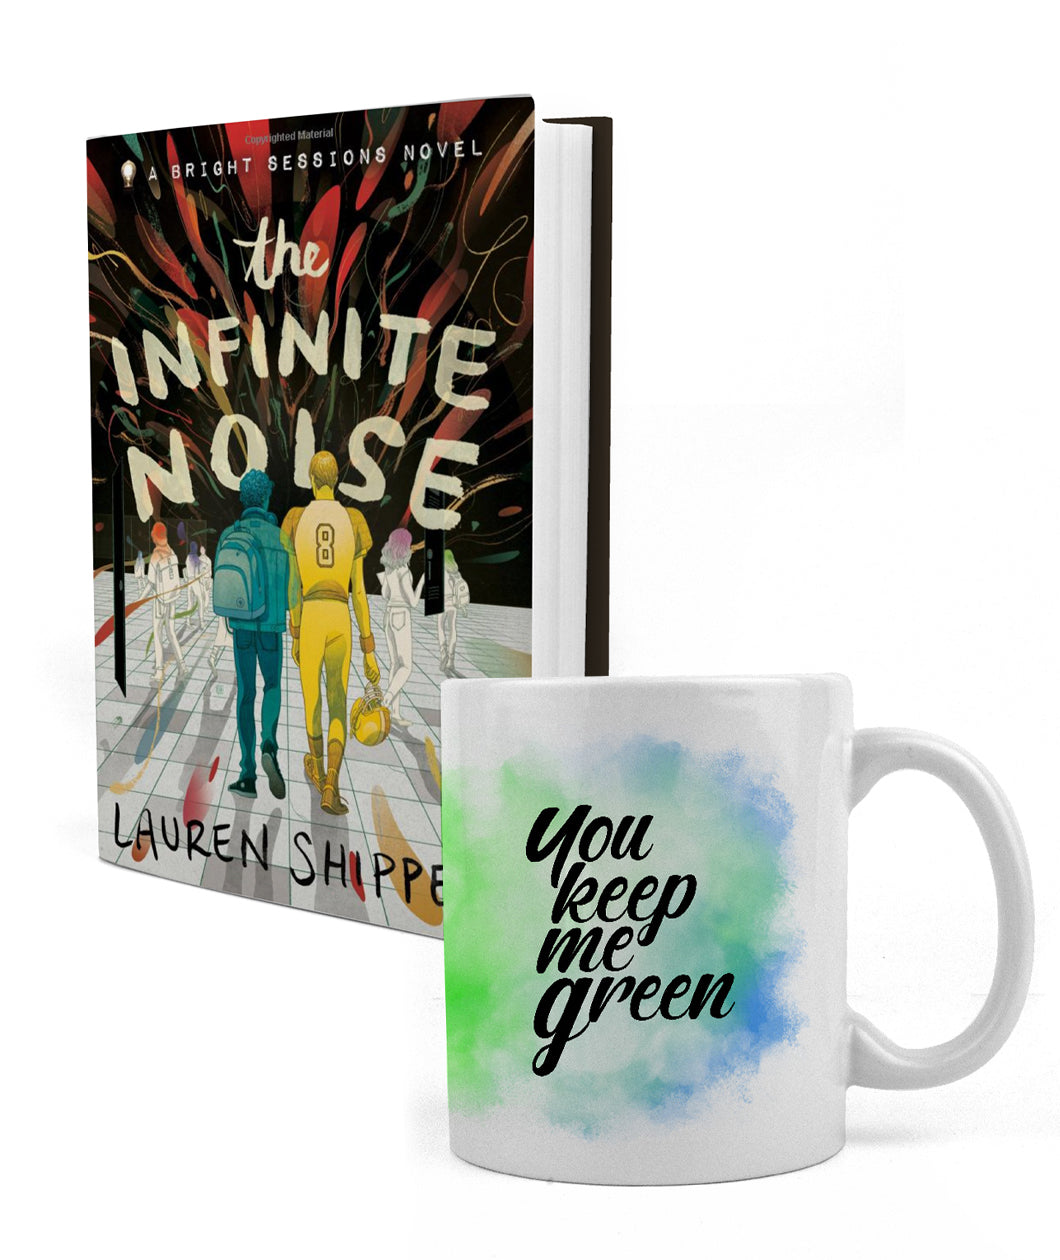 The Infinite Noise (Signed) Book Bundle